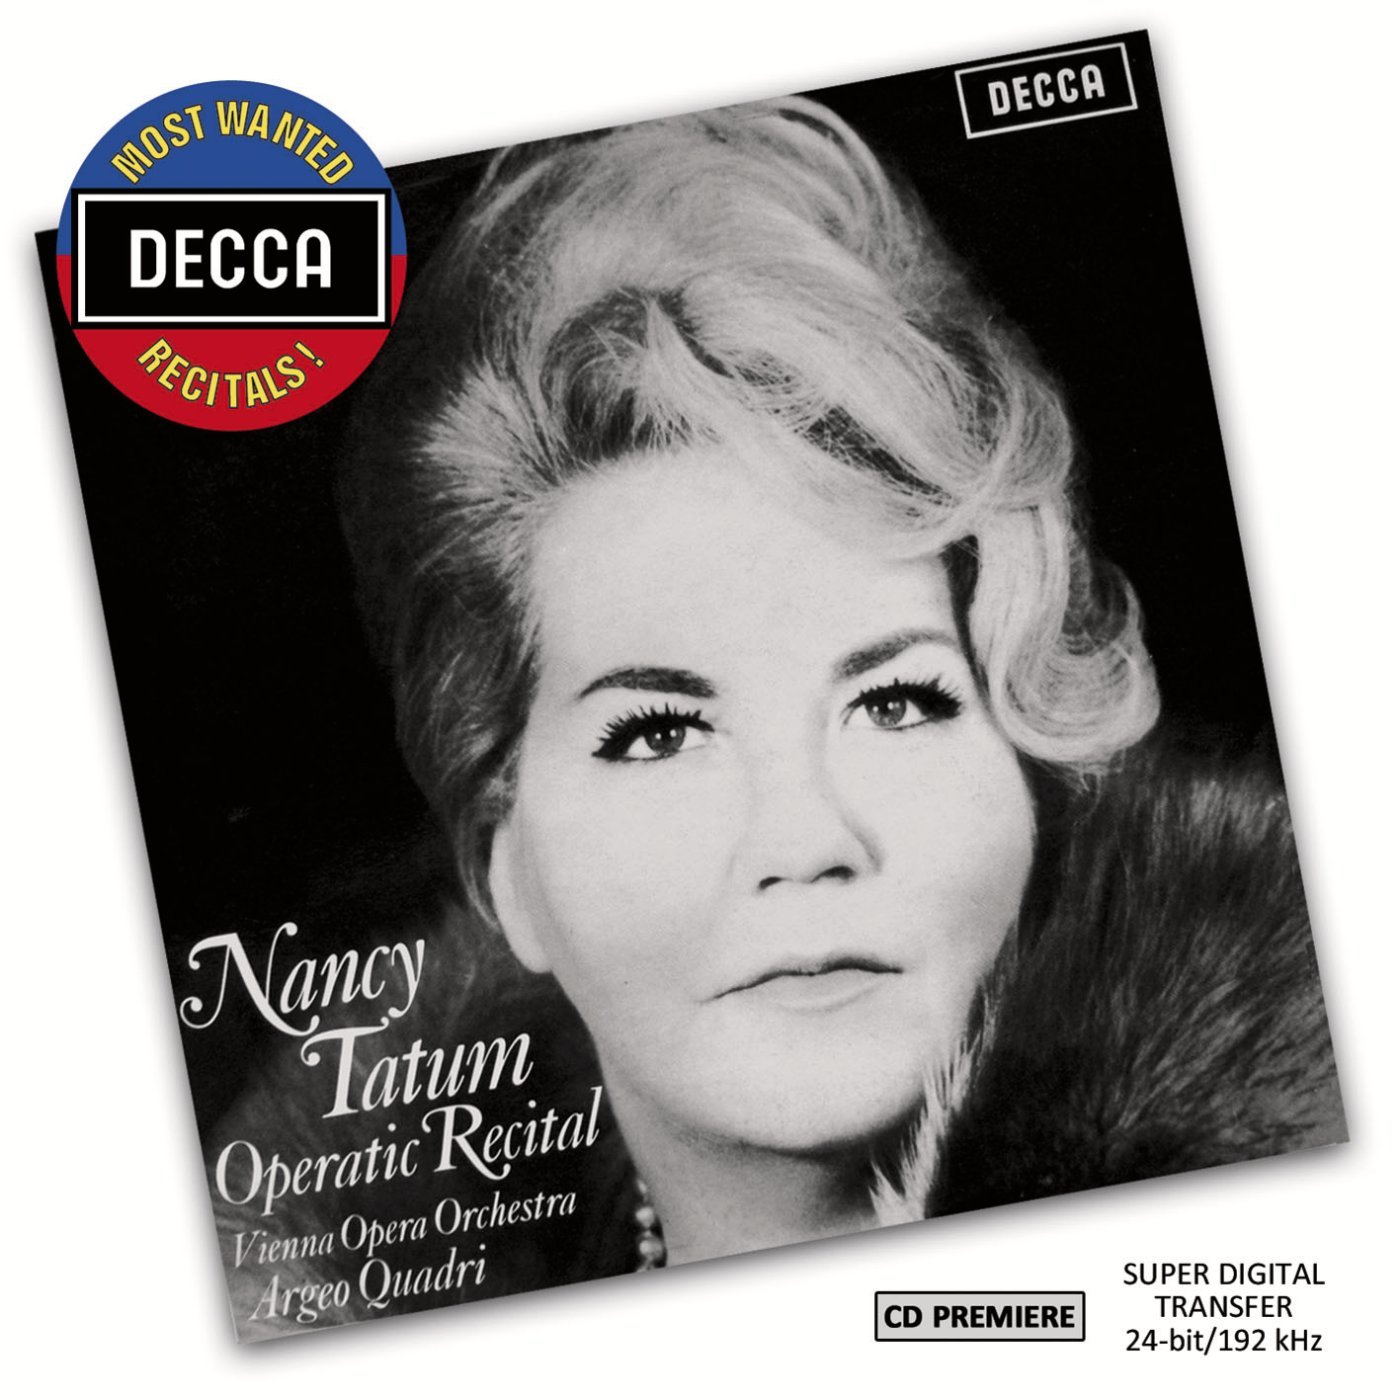 Nancy Tatum: Operatic Recital (Most Wanted Recitals!)